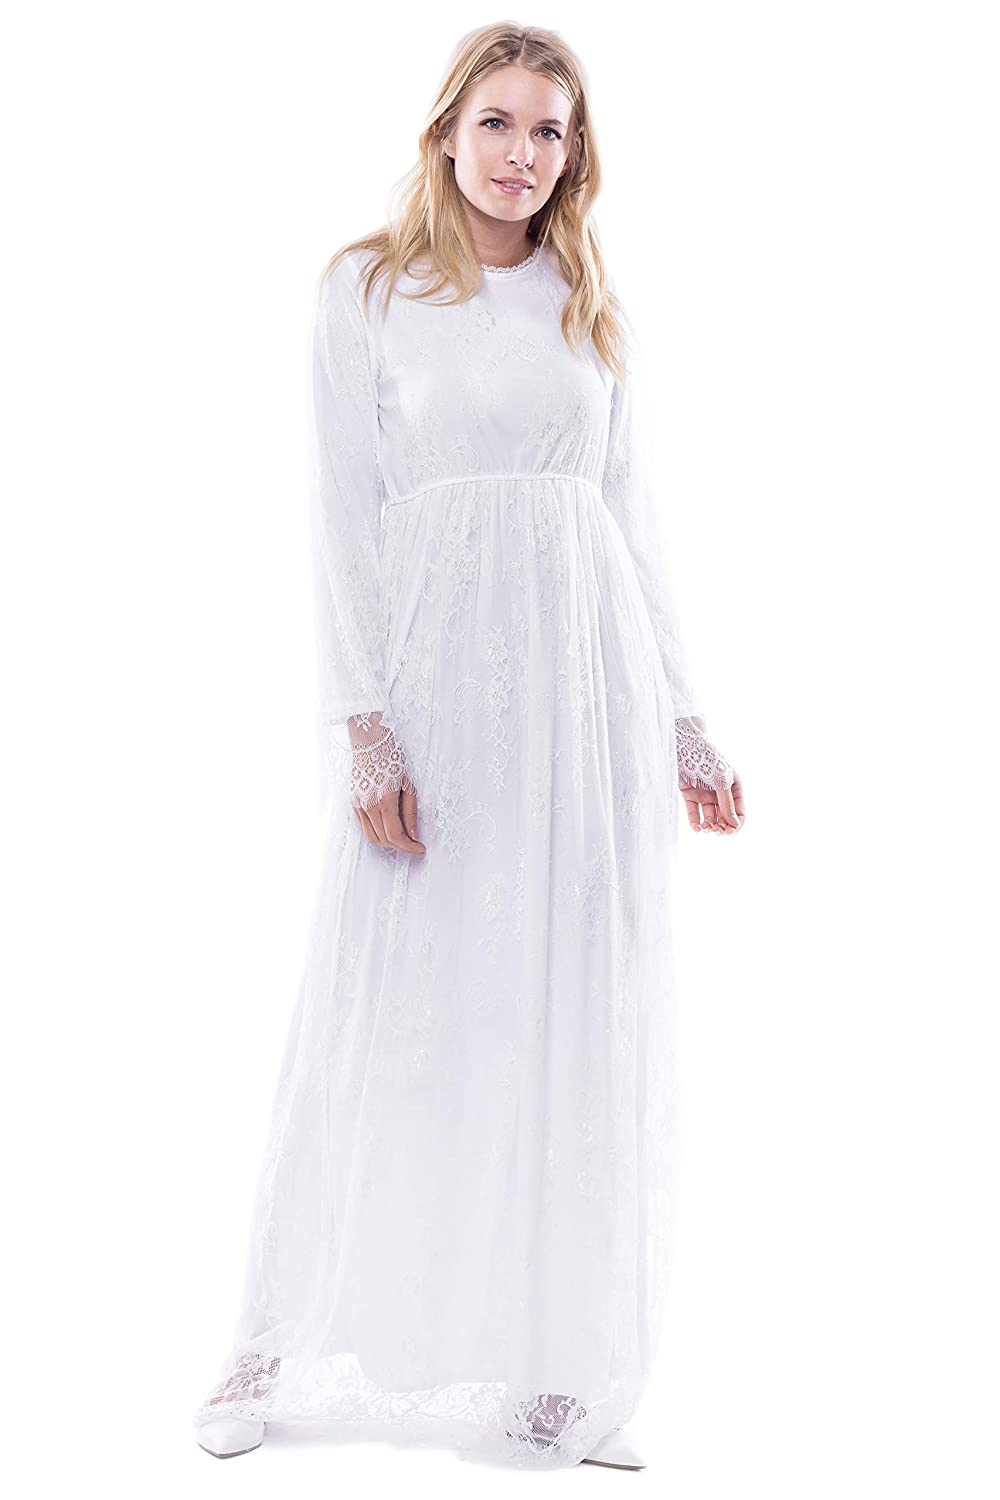 Old Fashioned Dresses | Old Dress Styles ModWhite Jasmine White Temple Dress $79.00 AT vintagedancer.com